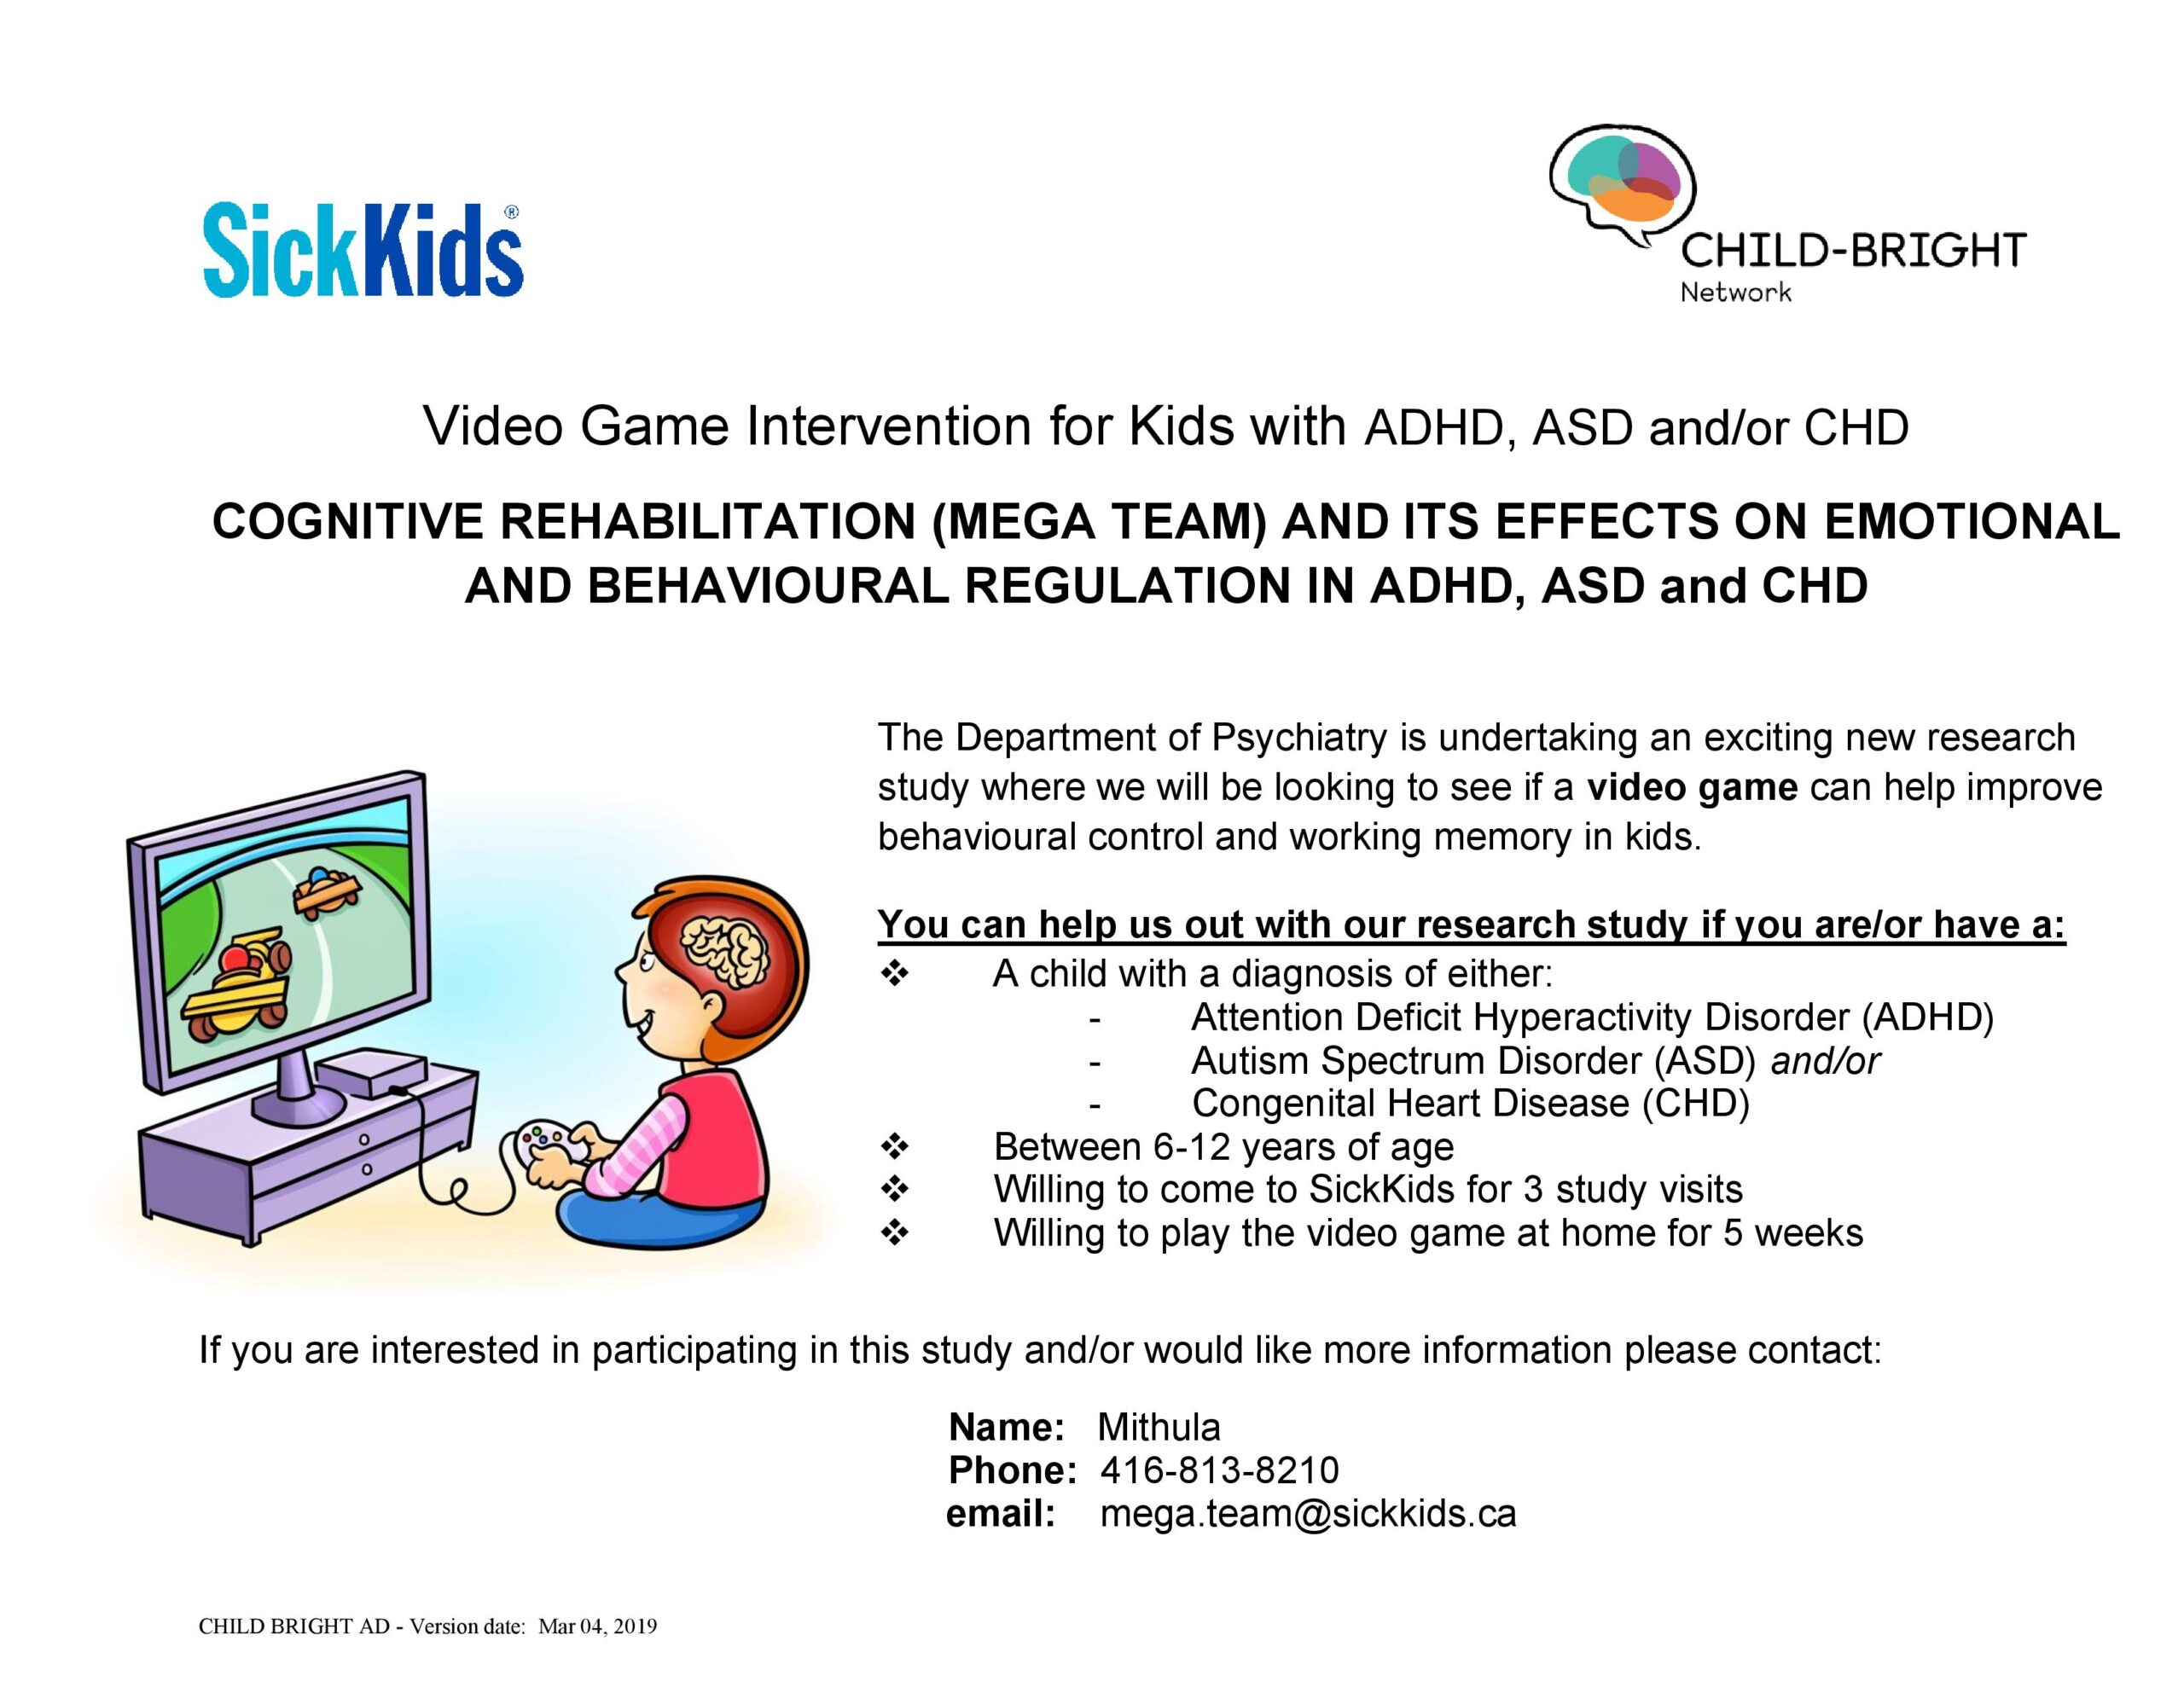 Sick Kids Has a Great Research Project